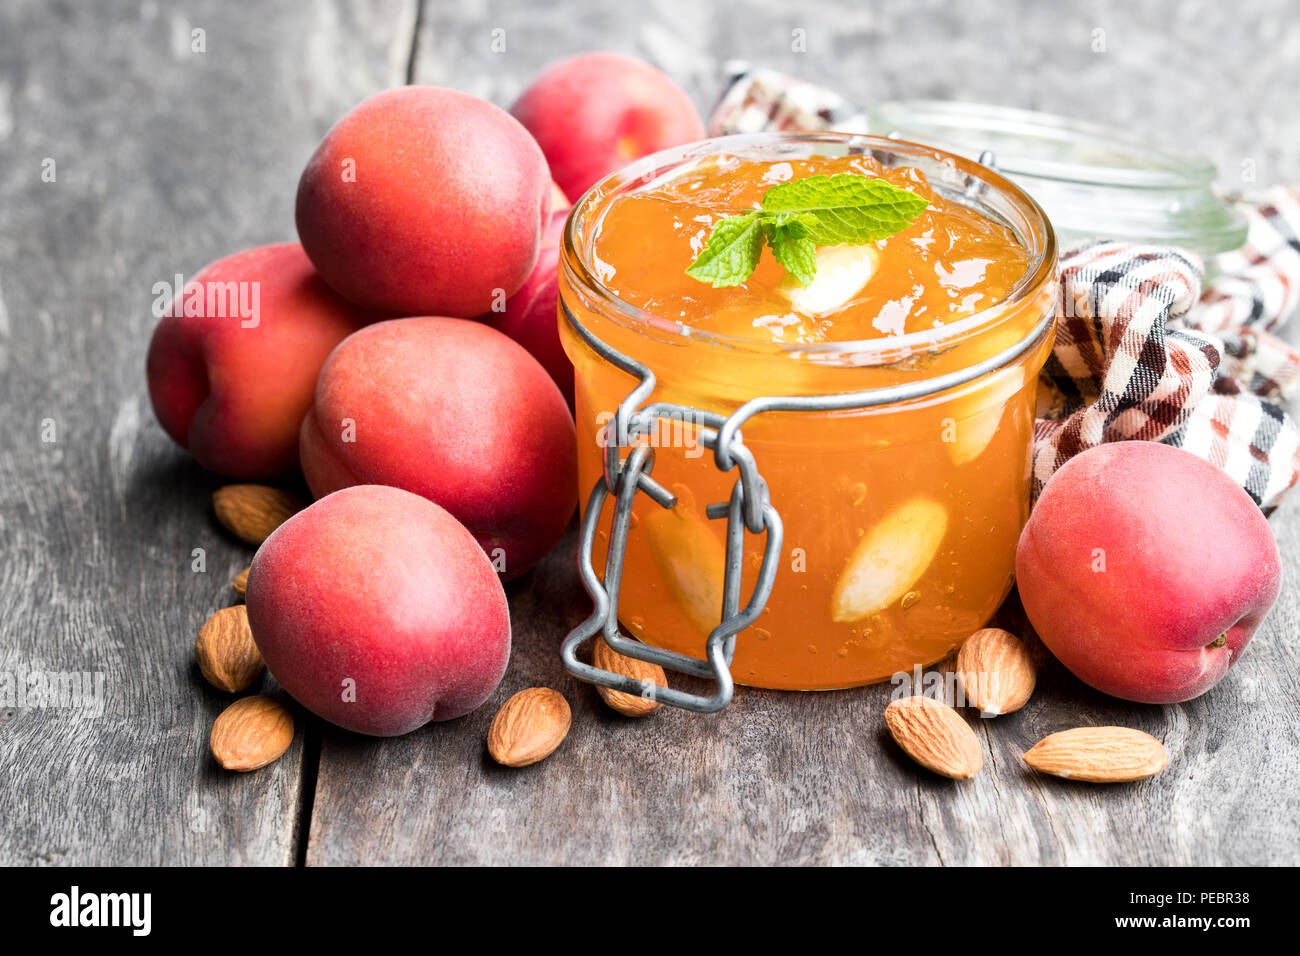 Red apricot  jam with almonds in a clear glass jar on wooden table - Stock Image